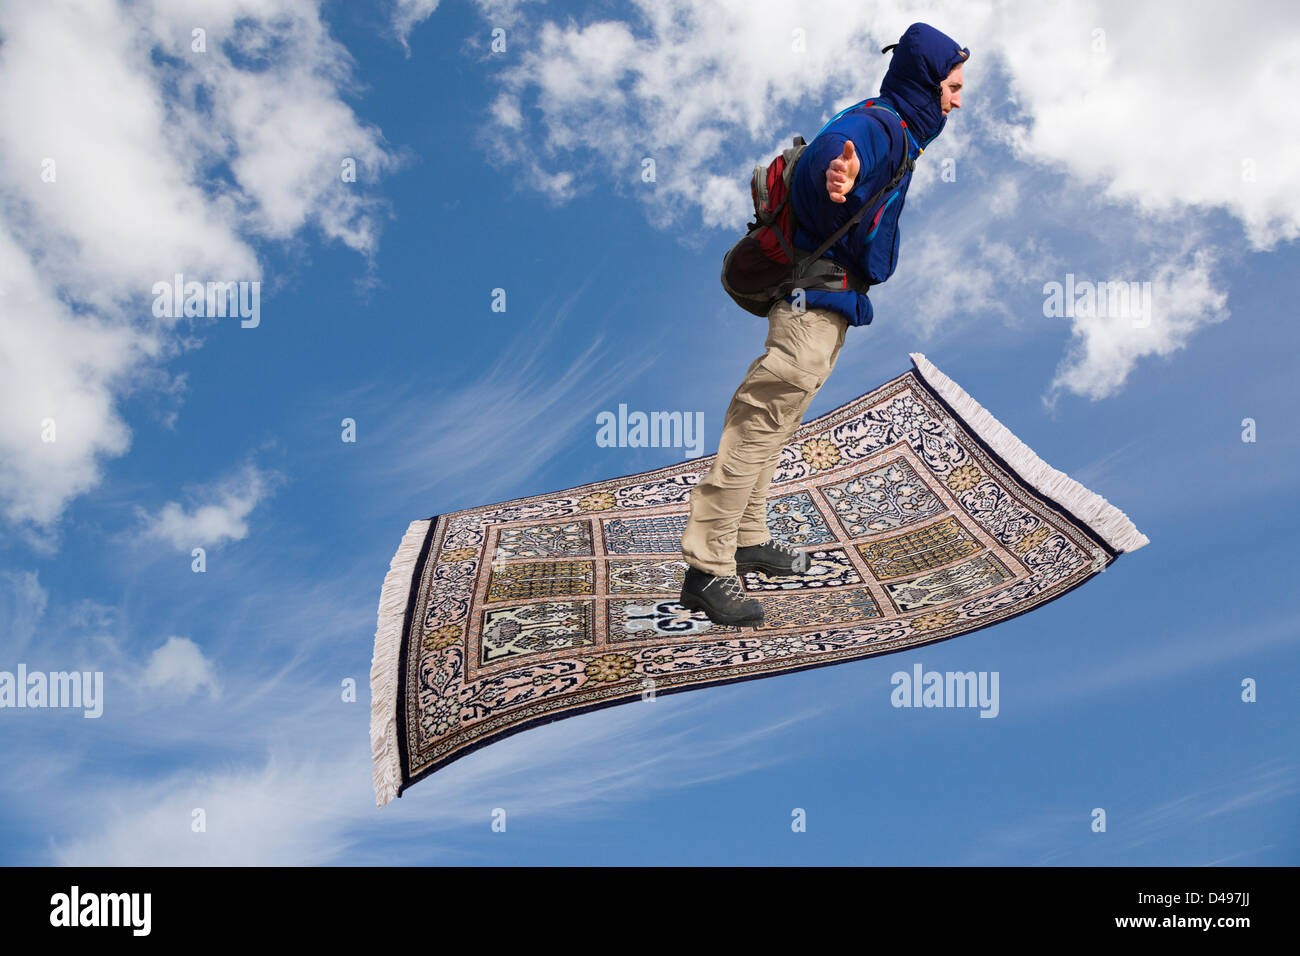 Man On A Magic Carpet Flying Up Across Blue Sky With White